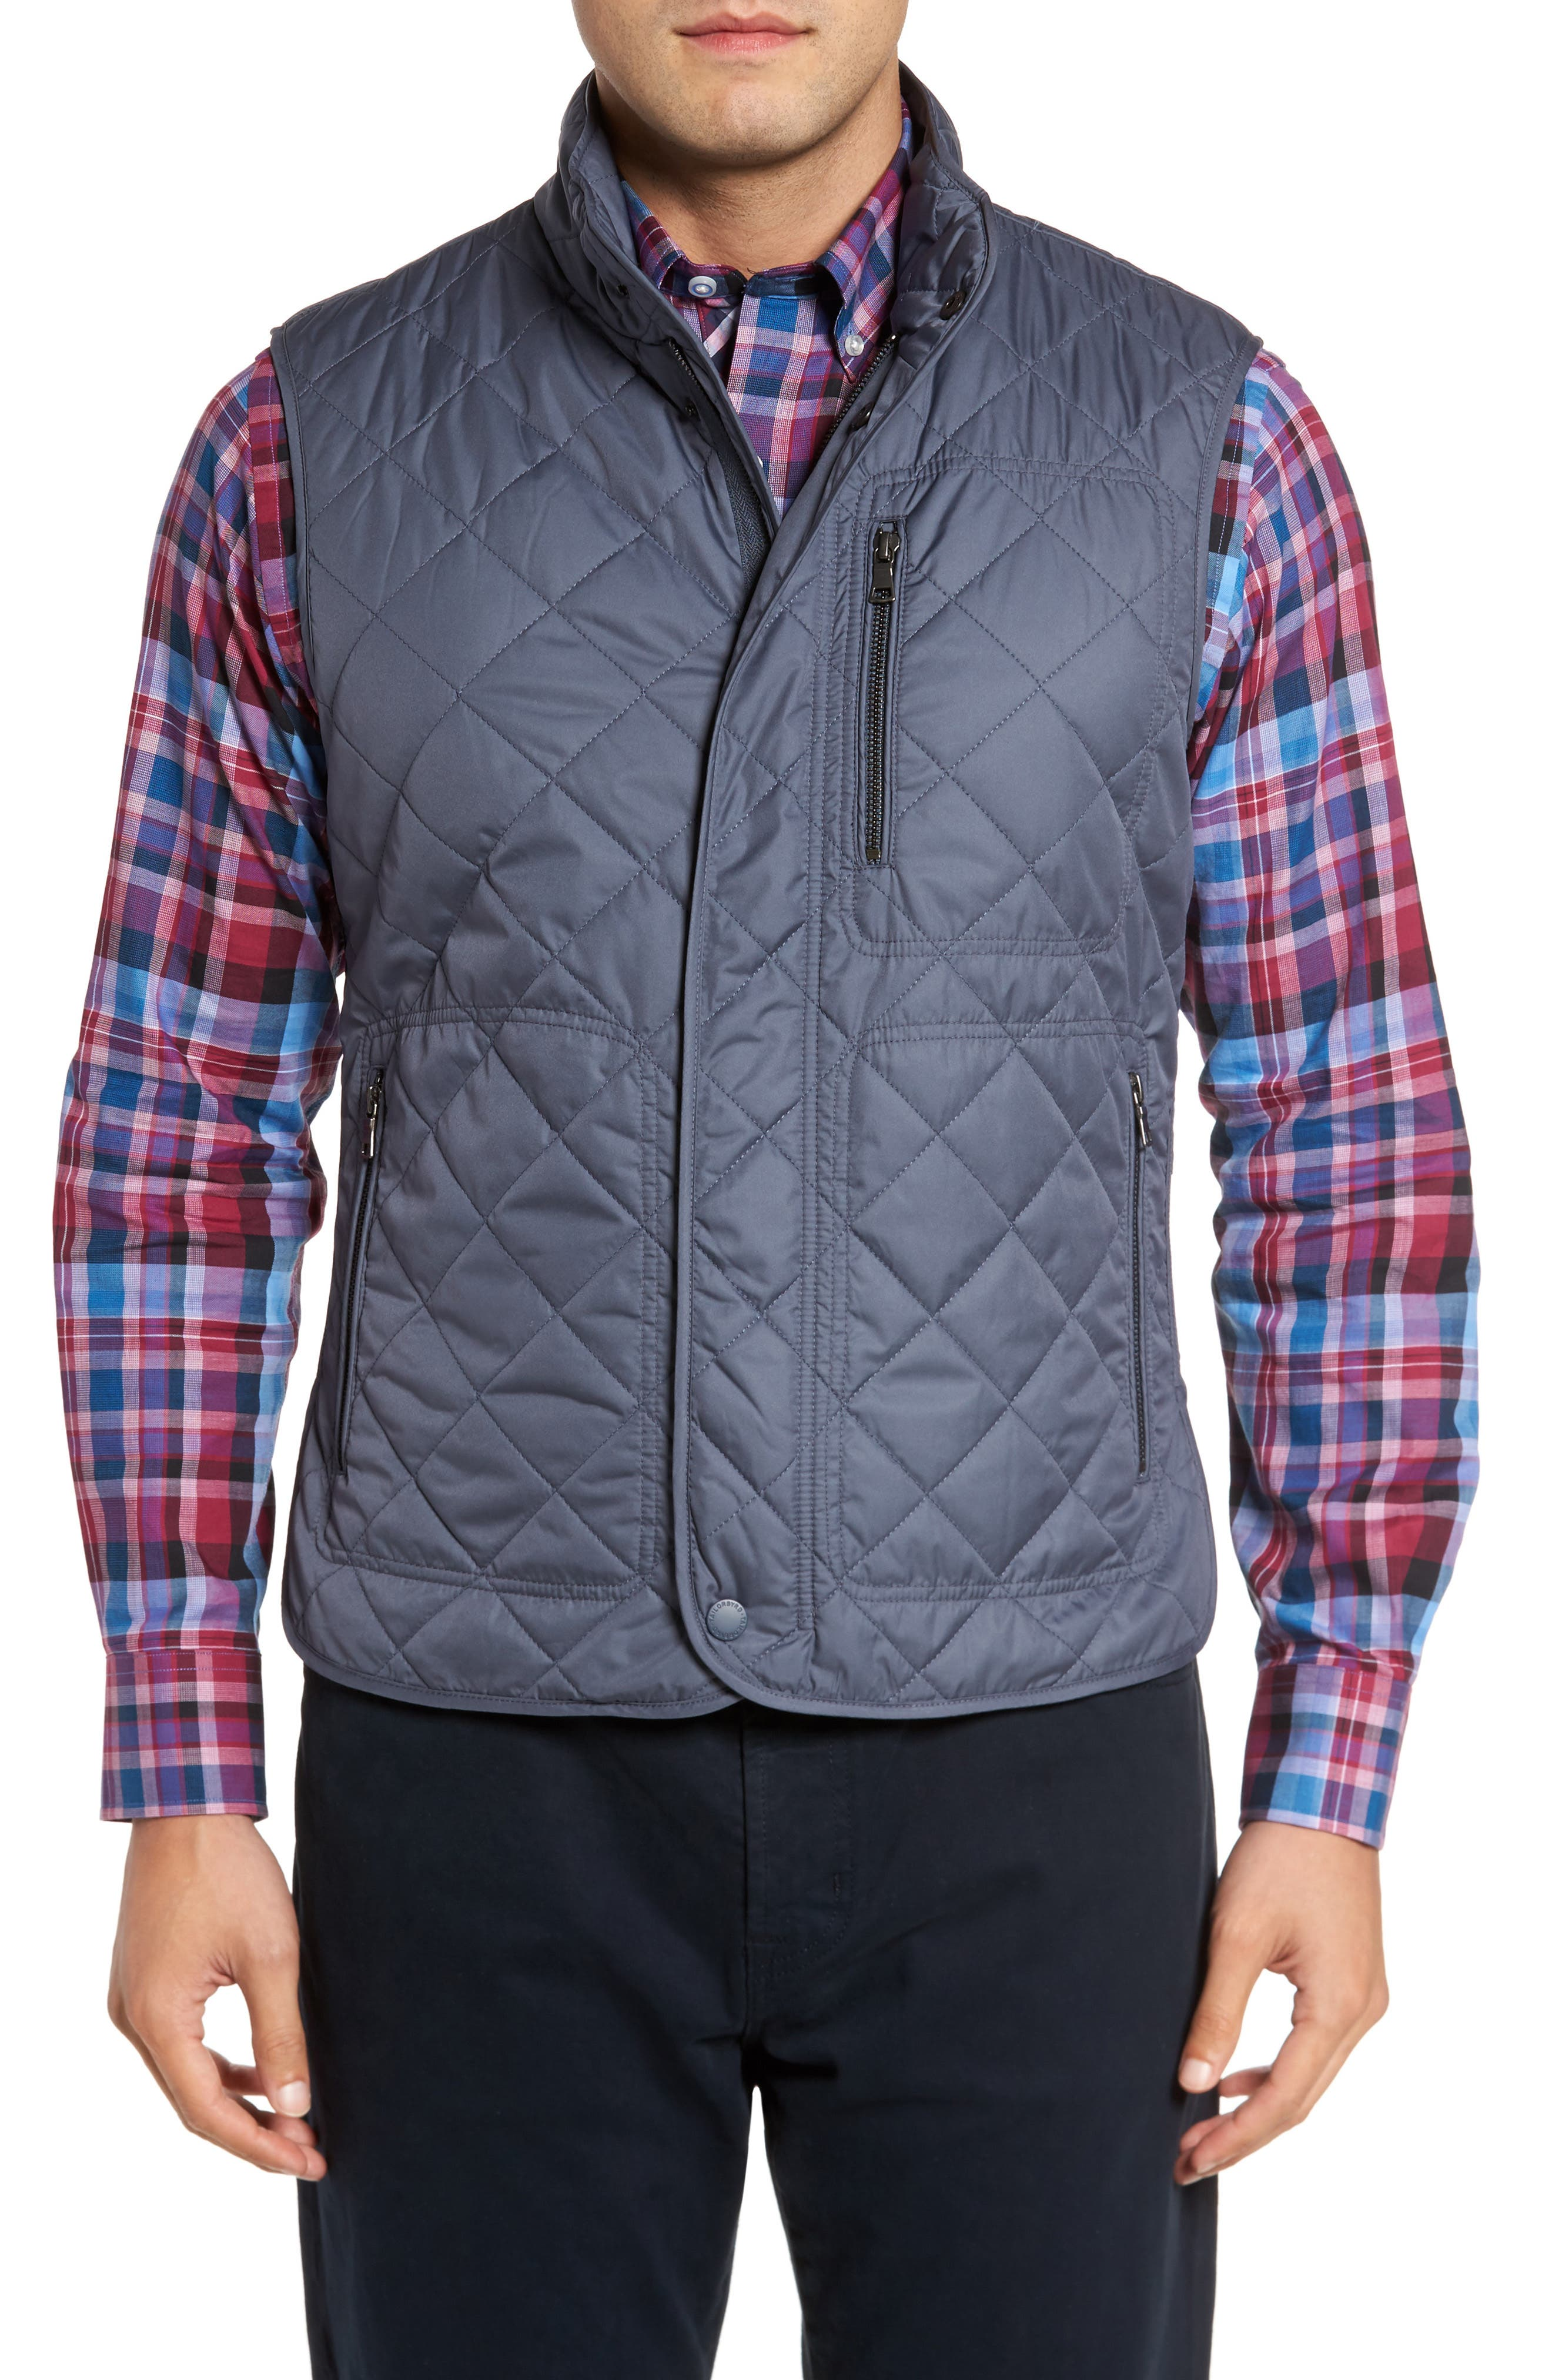 Main Image - TailorByrd Heflin Quilted Vest